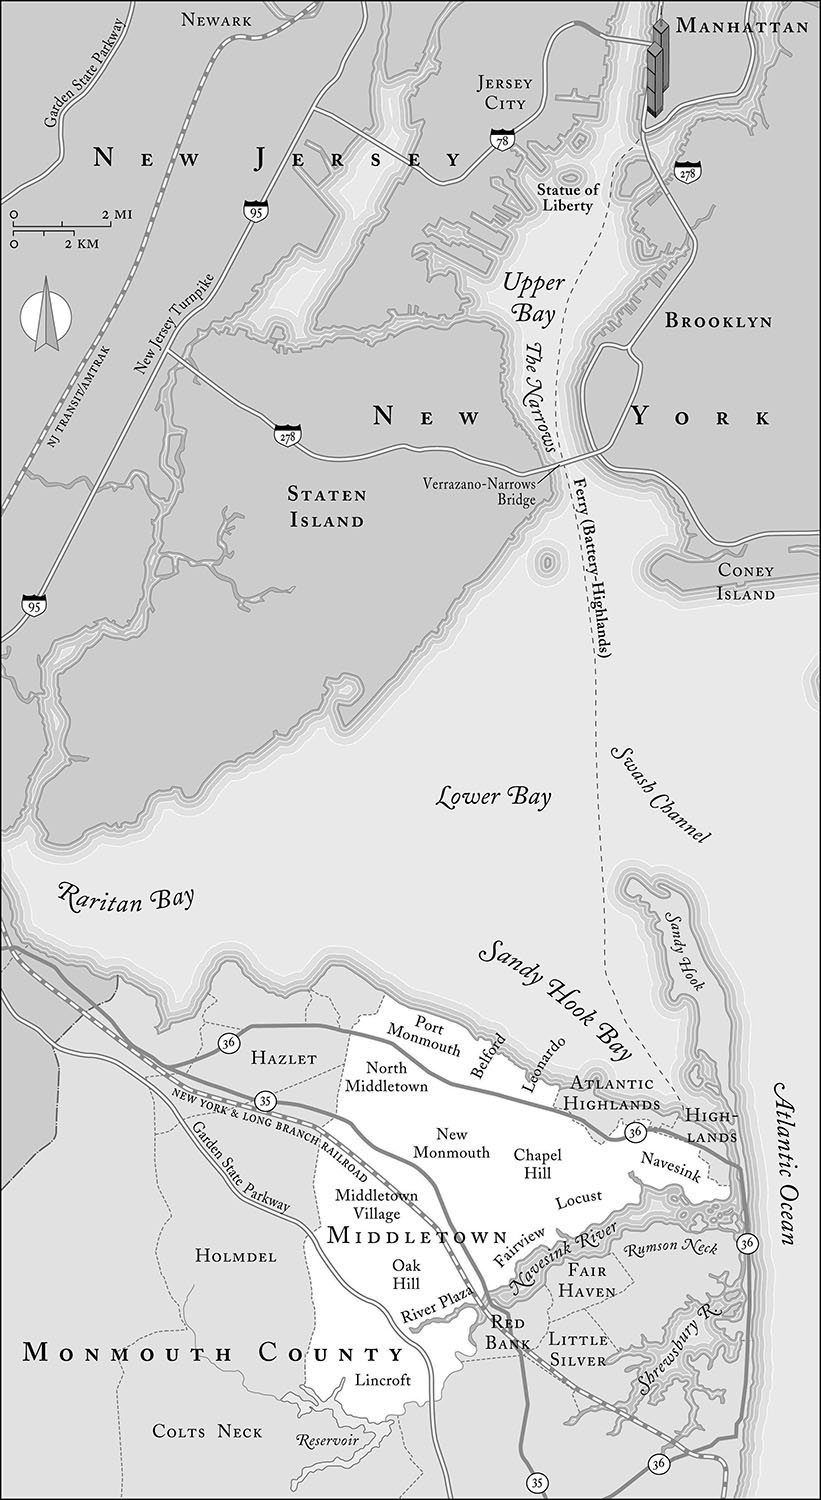 From   Middletown, America: One Town's Passage from Trauma to Hope,  by Gail Sheehy  (Random House, 2003). Map copyright ©David Lindroth Inc. Sheehy explores the effects of 9/11 on a New Jersey town that lost nearly fifty residents to the terrorist attack..